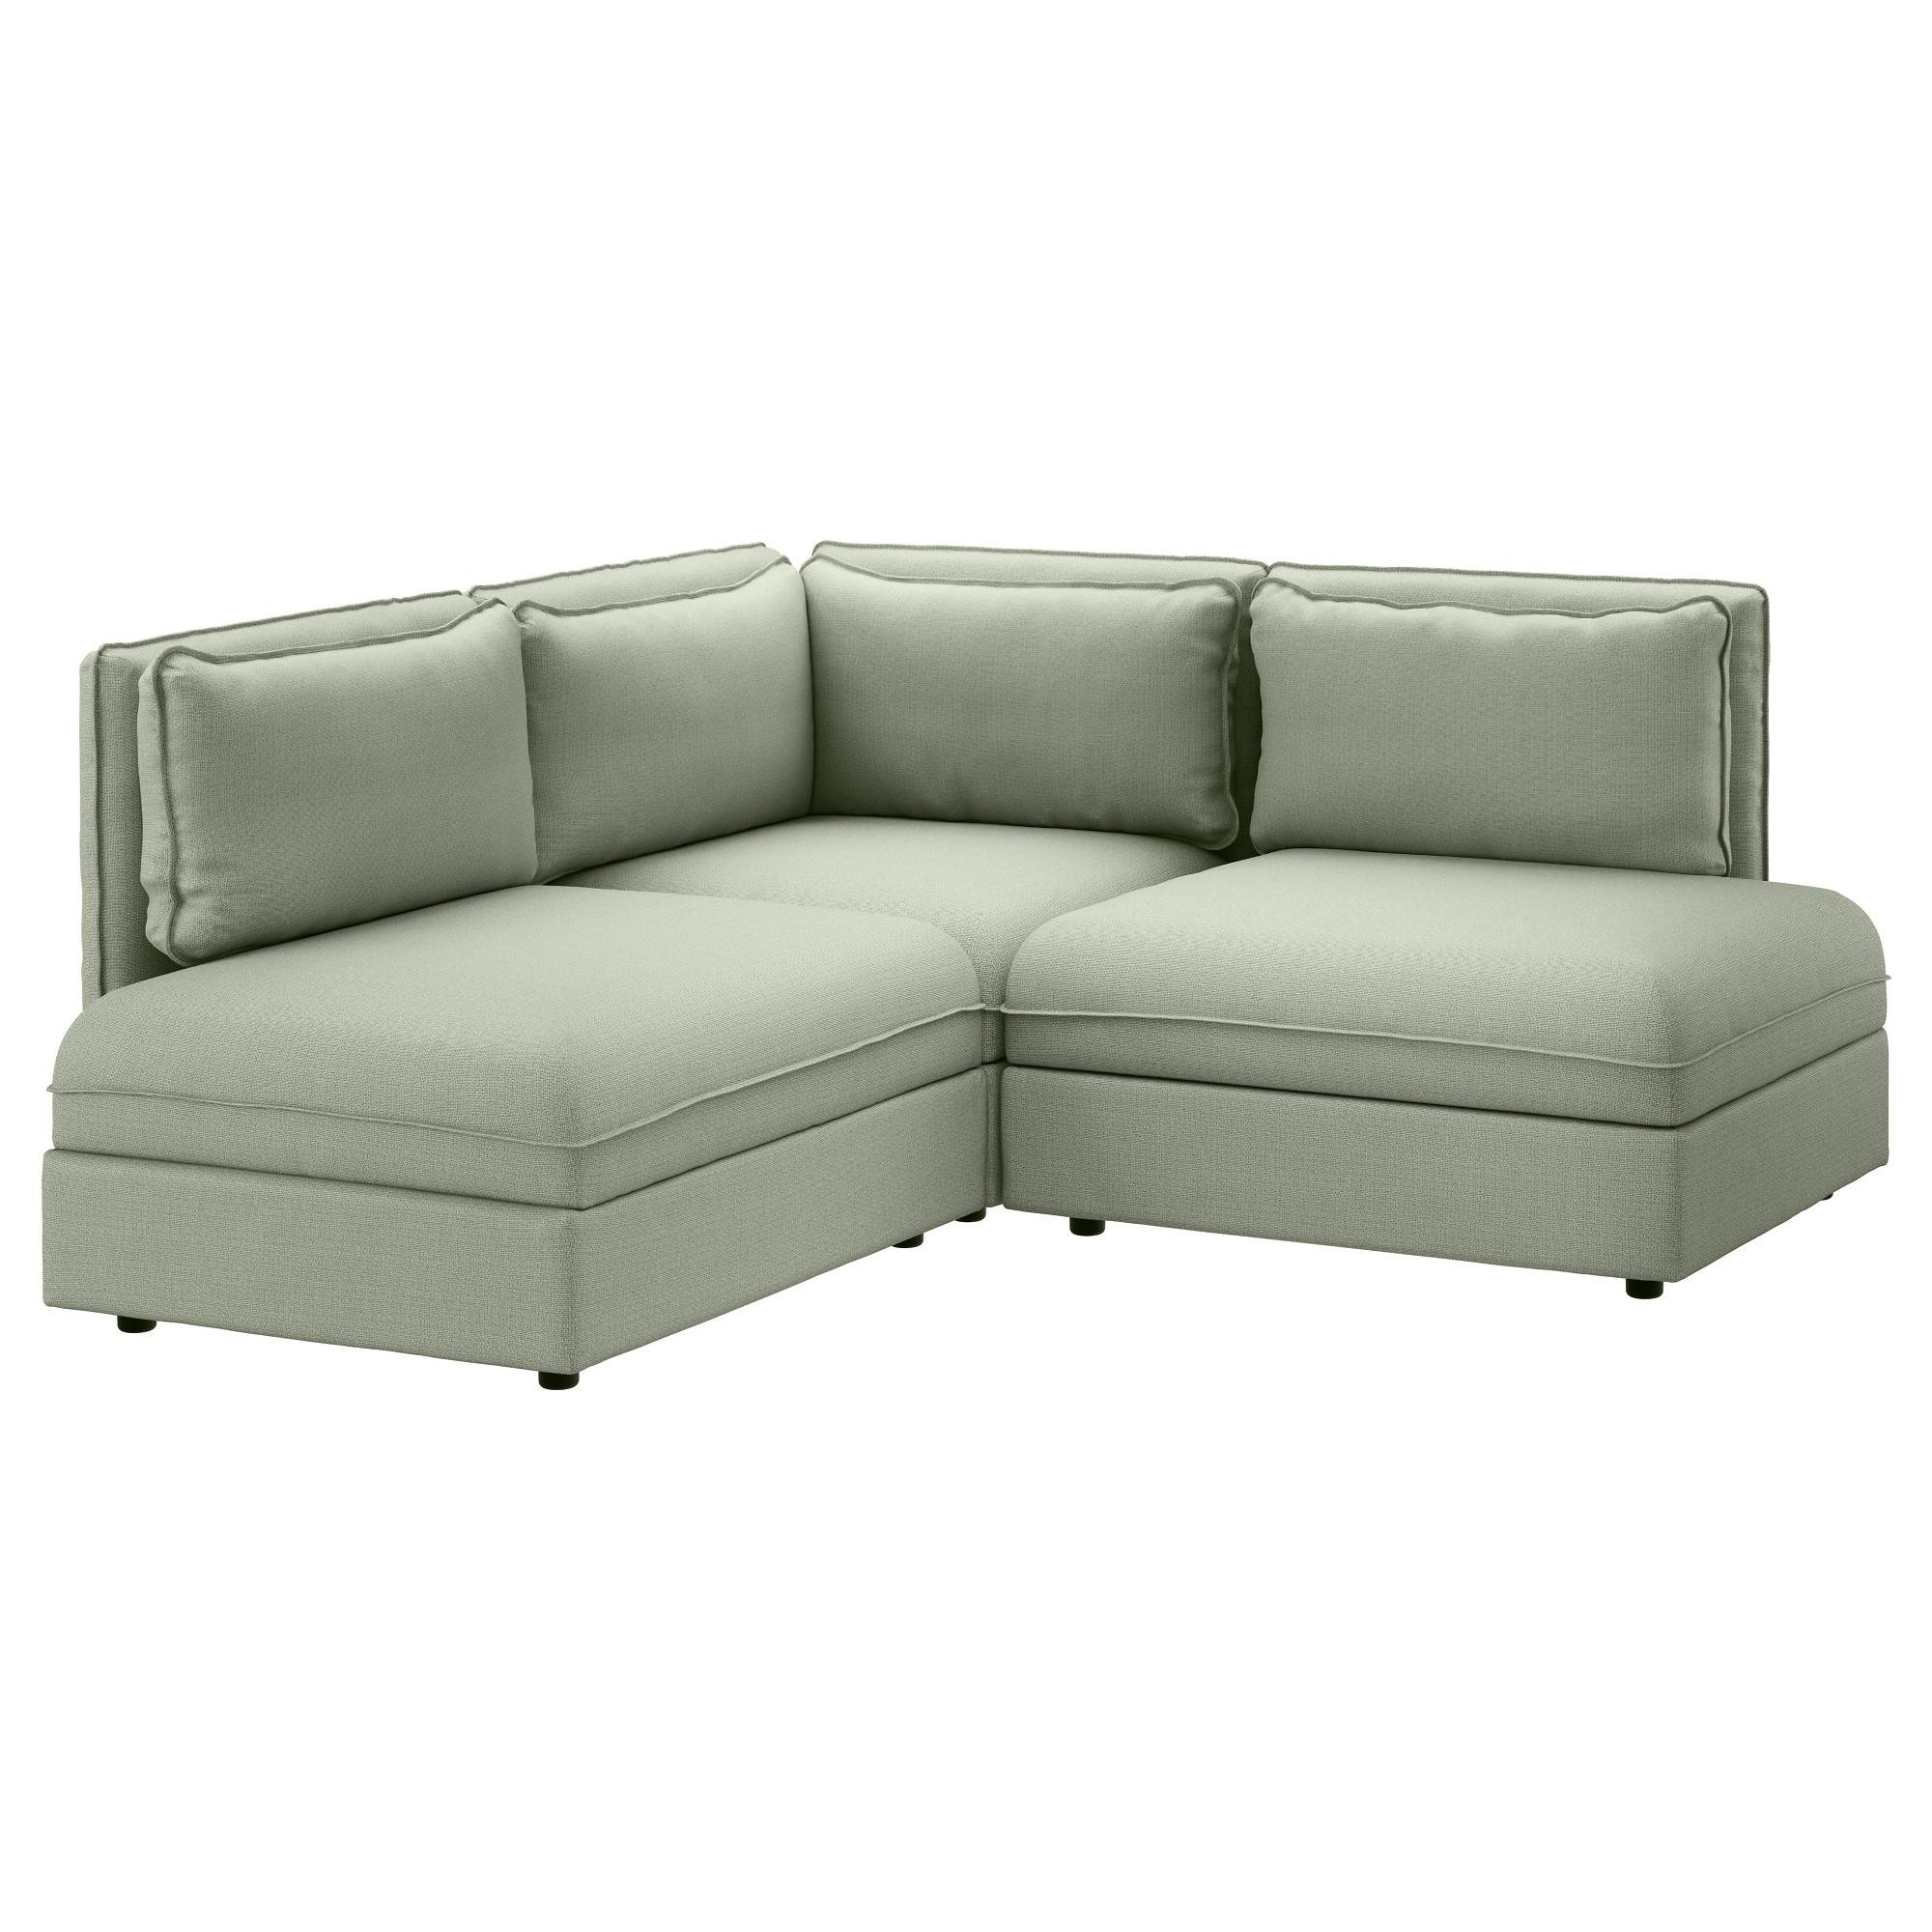 Furniture & Rug: Cheap Sectional Couches For Home Furniture Idea within Leather Modular Sectional Sofas (Image 5 of 30)